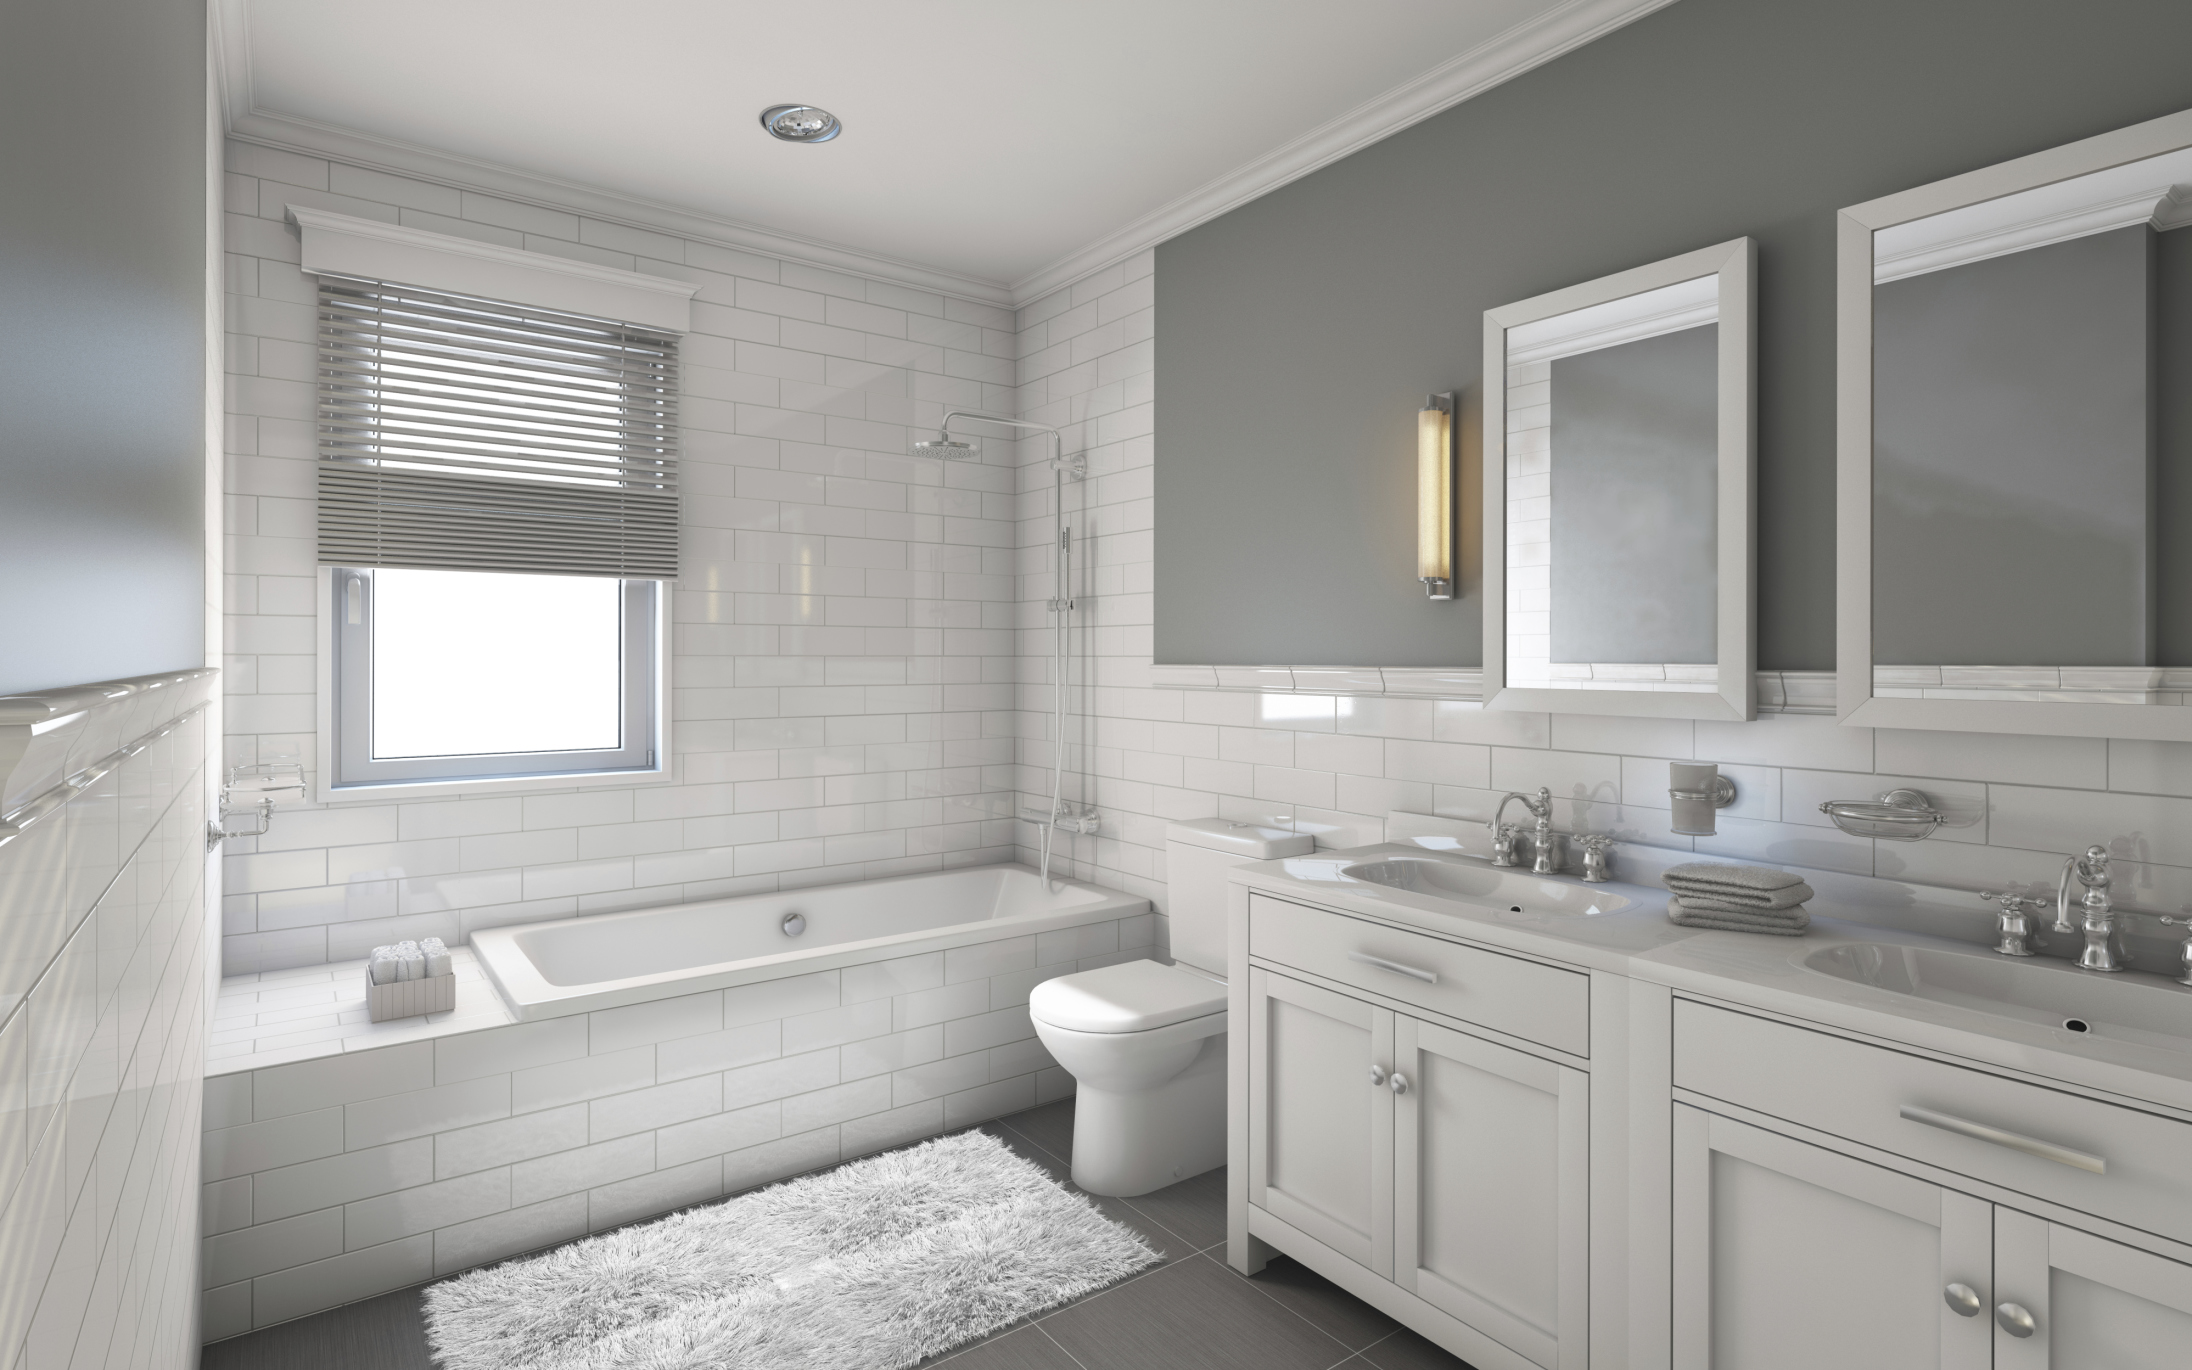 En suite bathroom designs pictures - En Suite Bathroom